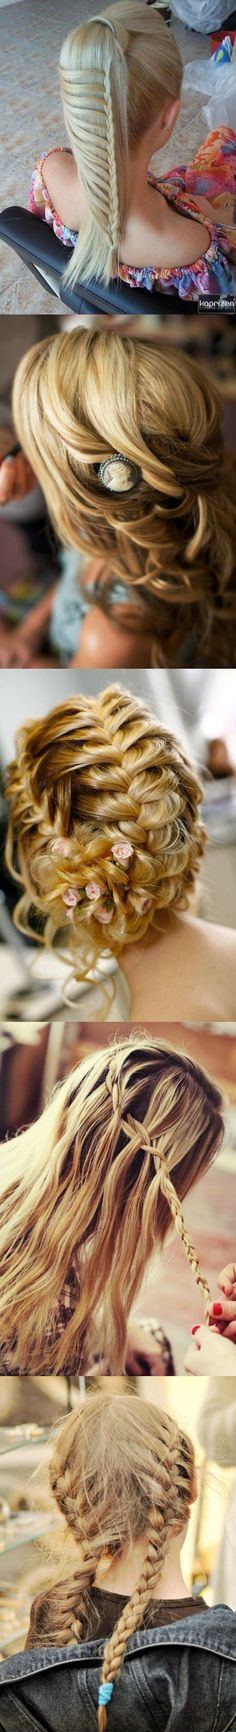 Really cool hair styles